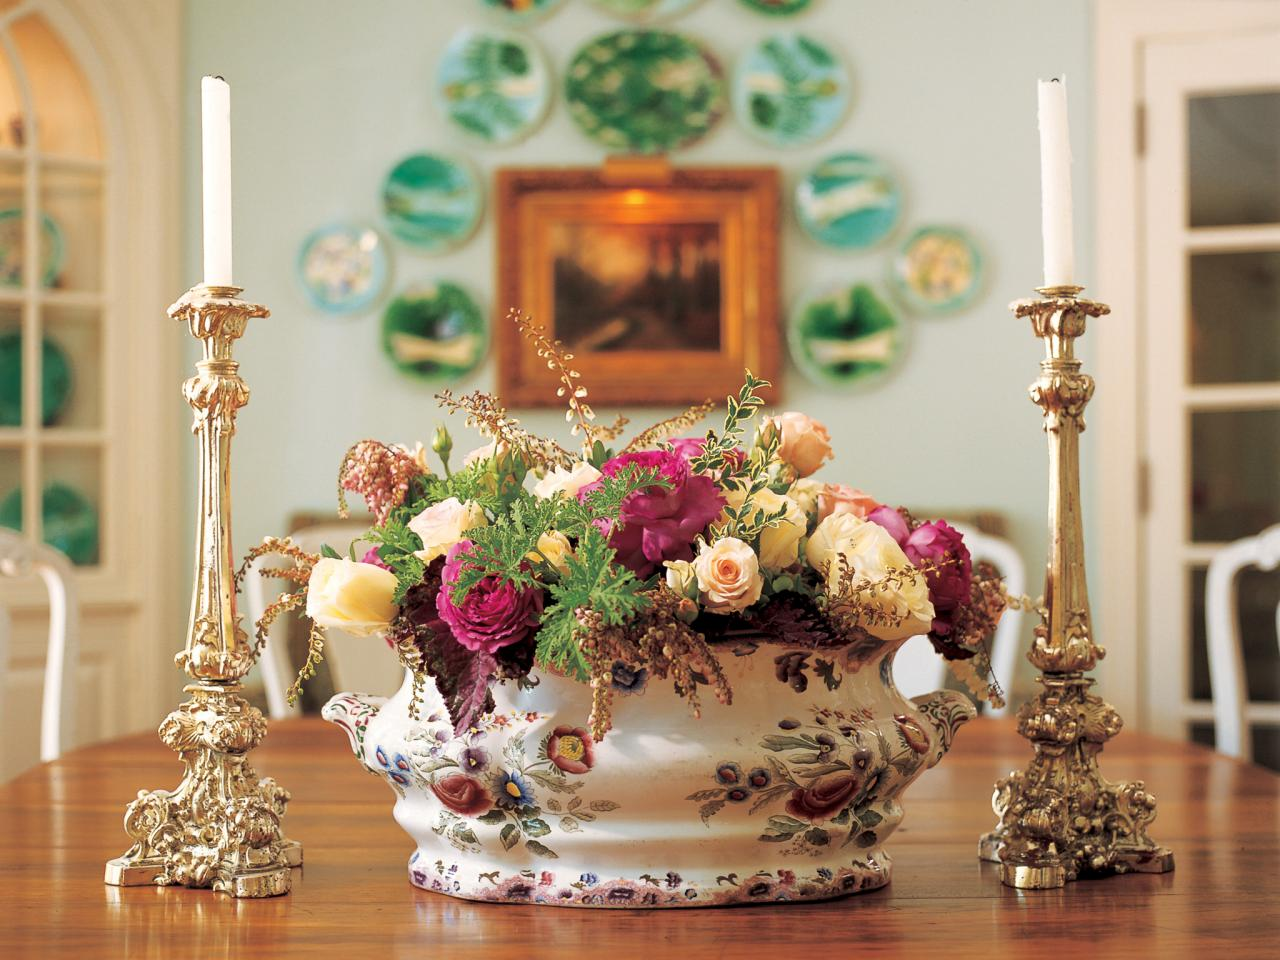 Table Dining Room Flower Arrangements By Last Minute Thanksgiving Centerpieces Hgtv U0027s Decorating U0026 Design